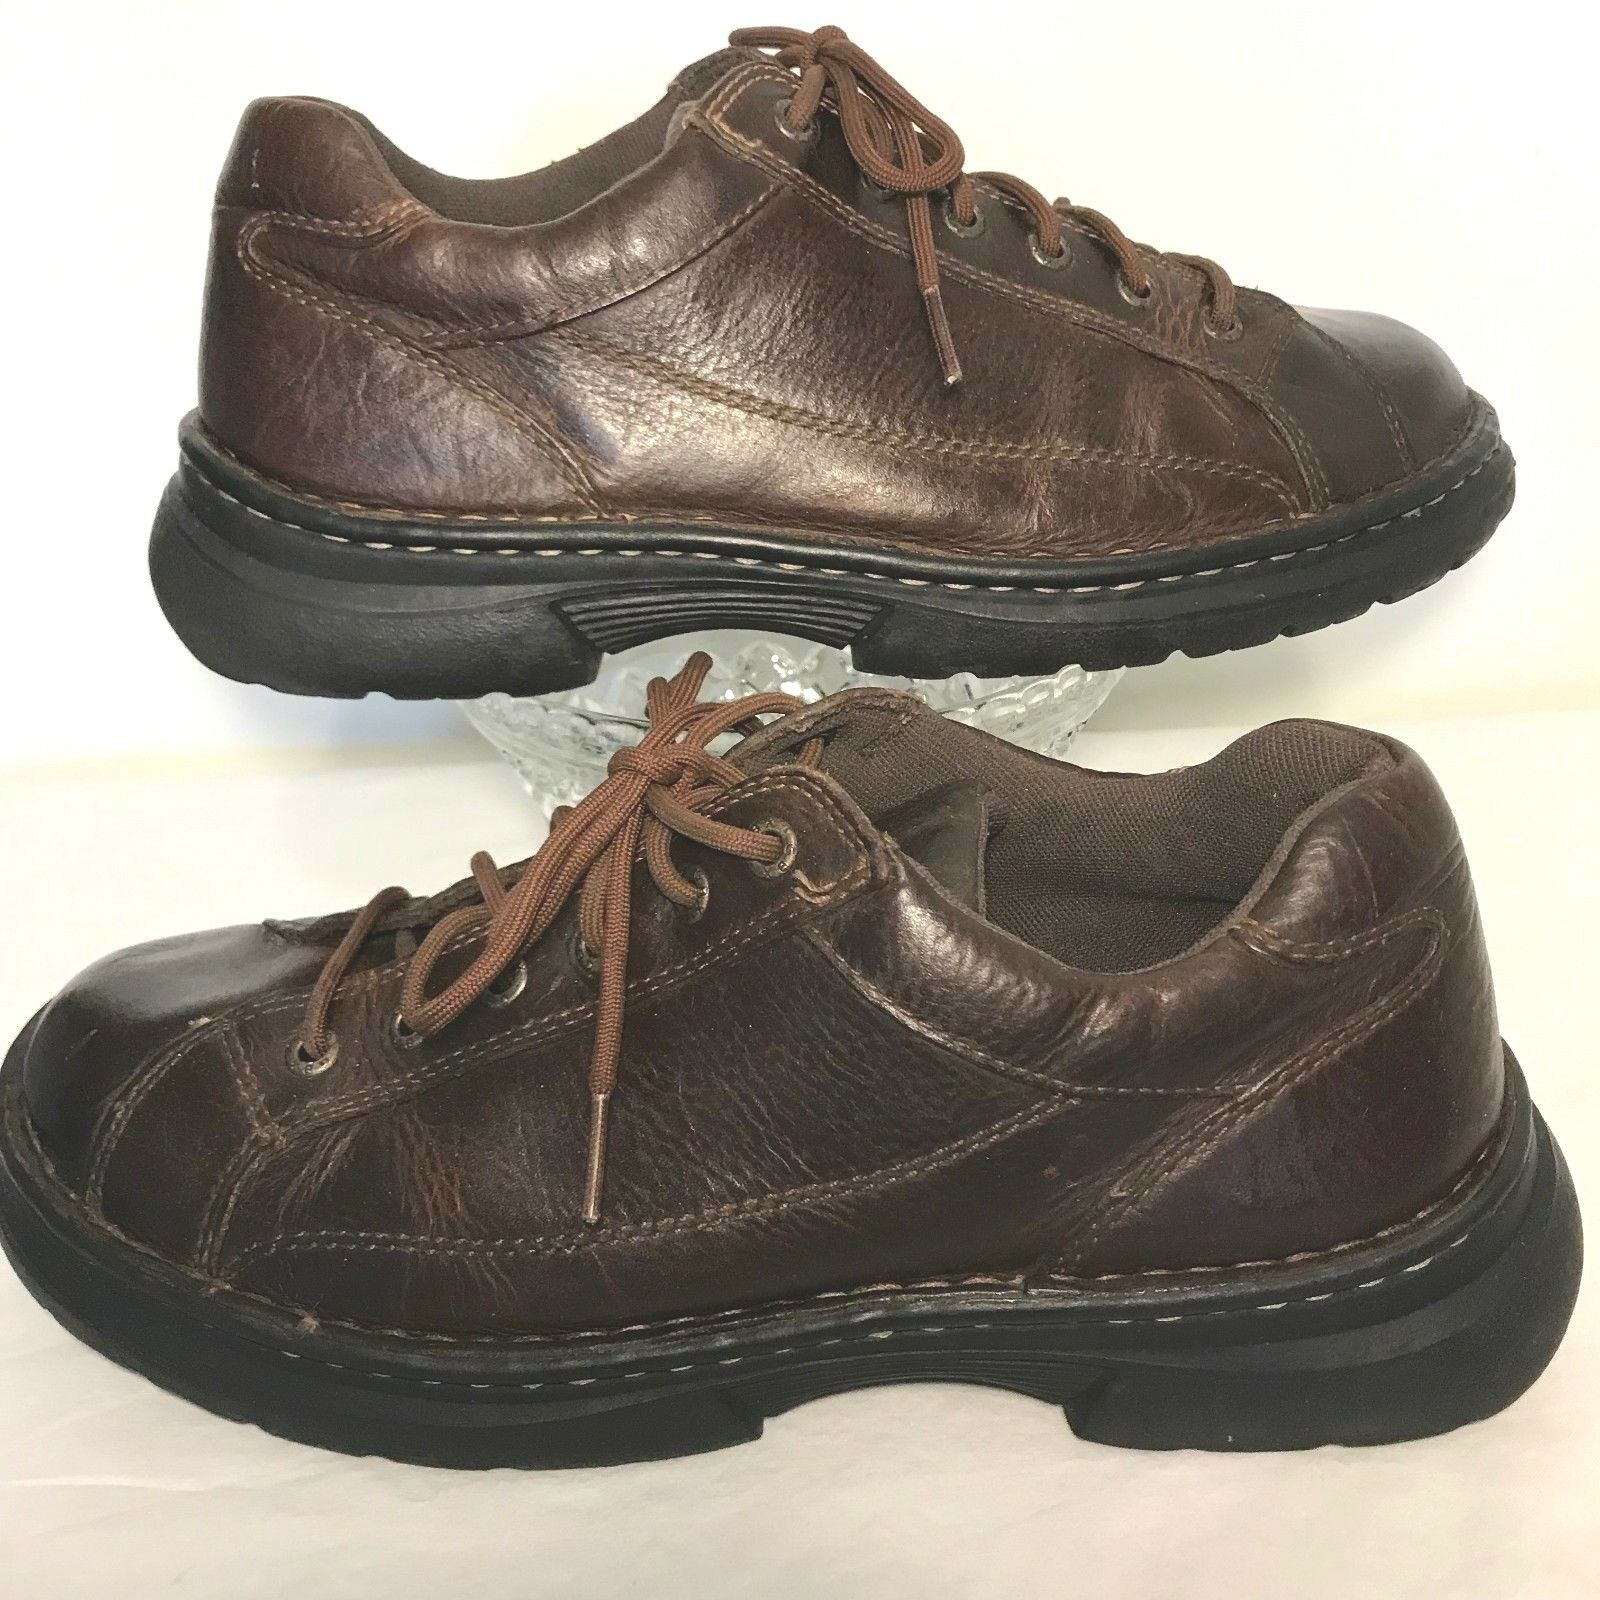 GBX Ridgewood Leather Oxfords shoes Mens 10.5M Casual Work Lace Up